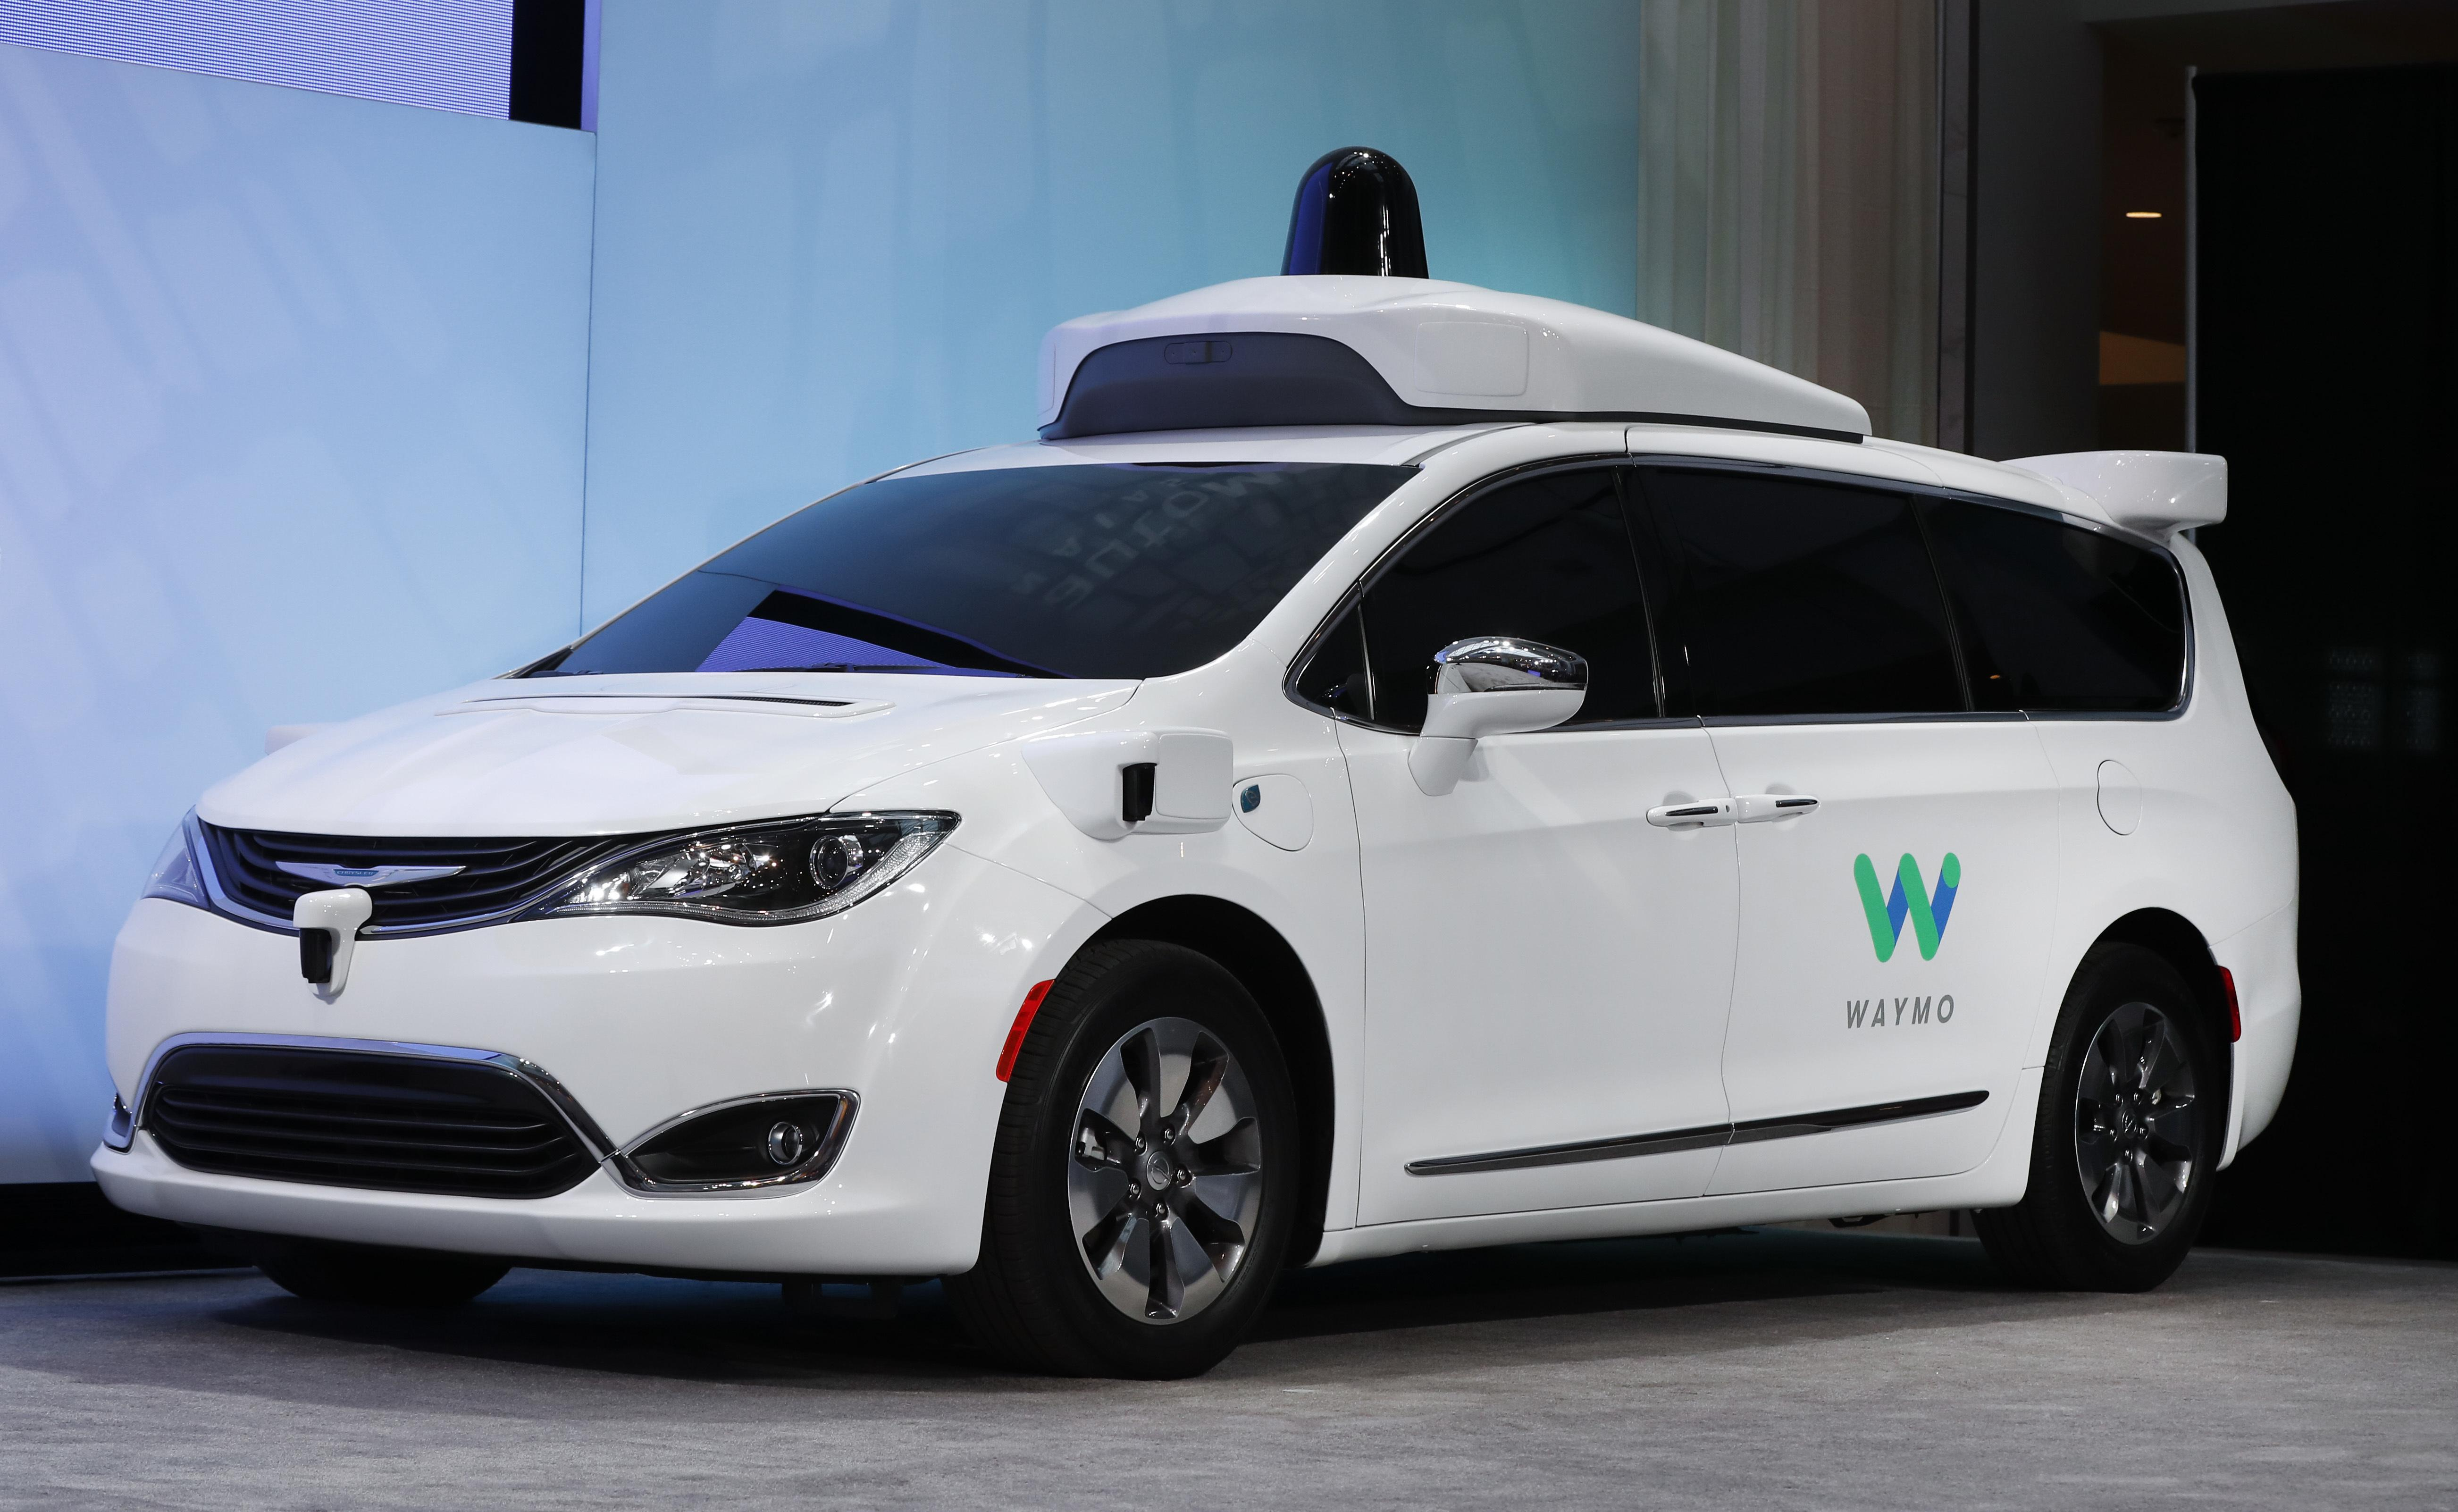 A Chrysler Pacifica Hybrid Outed With Waymo S Suite Of Sensors And Radar Is Displayed At The